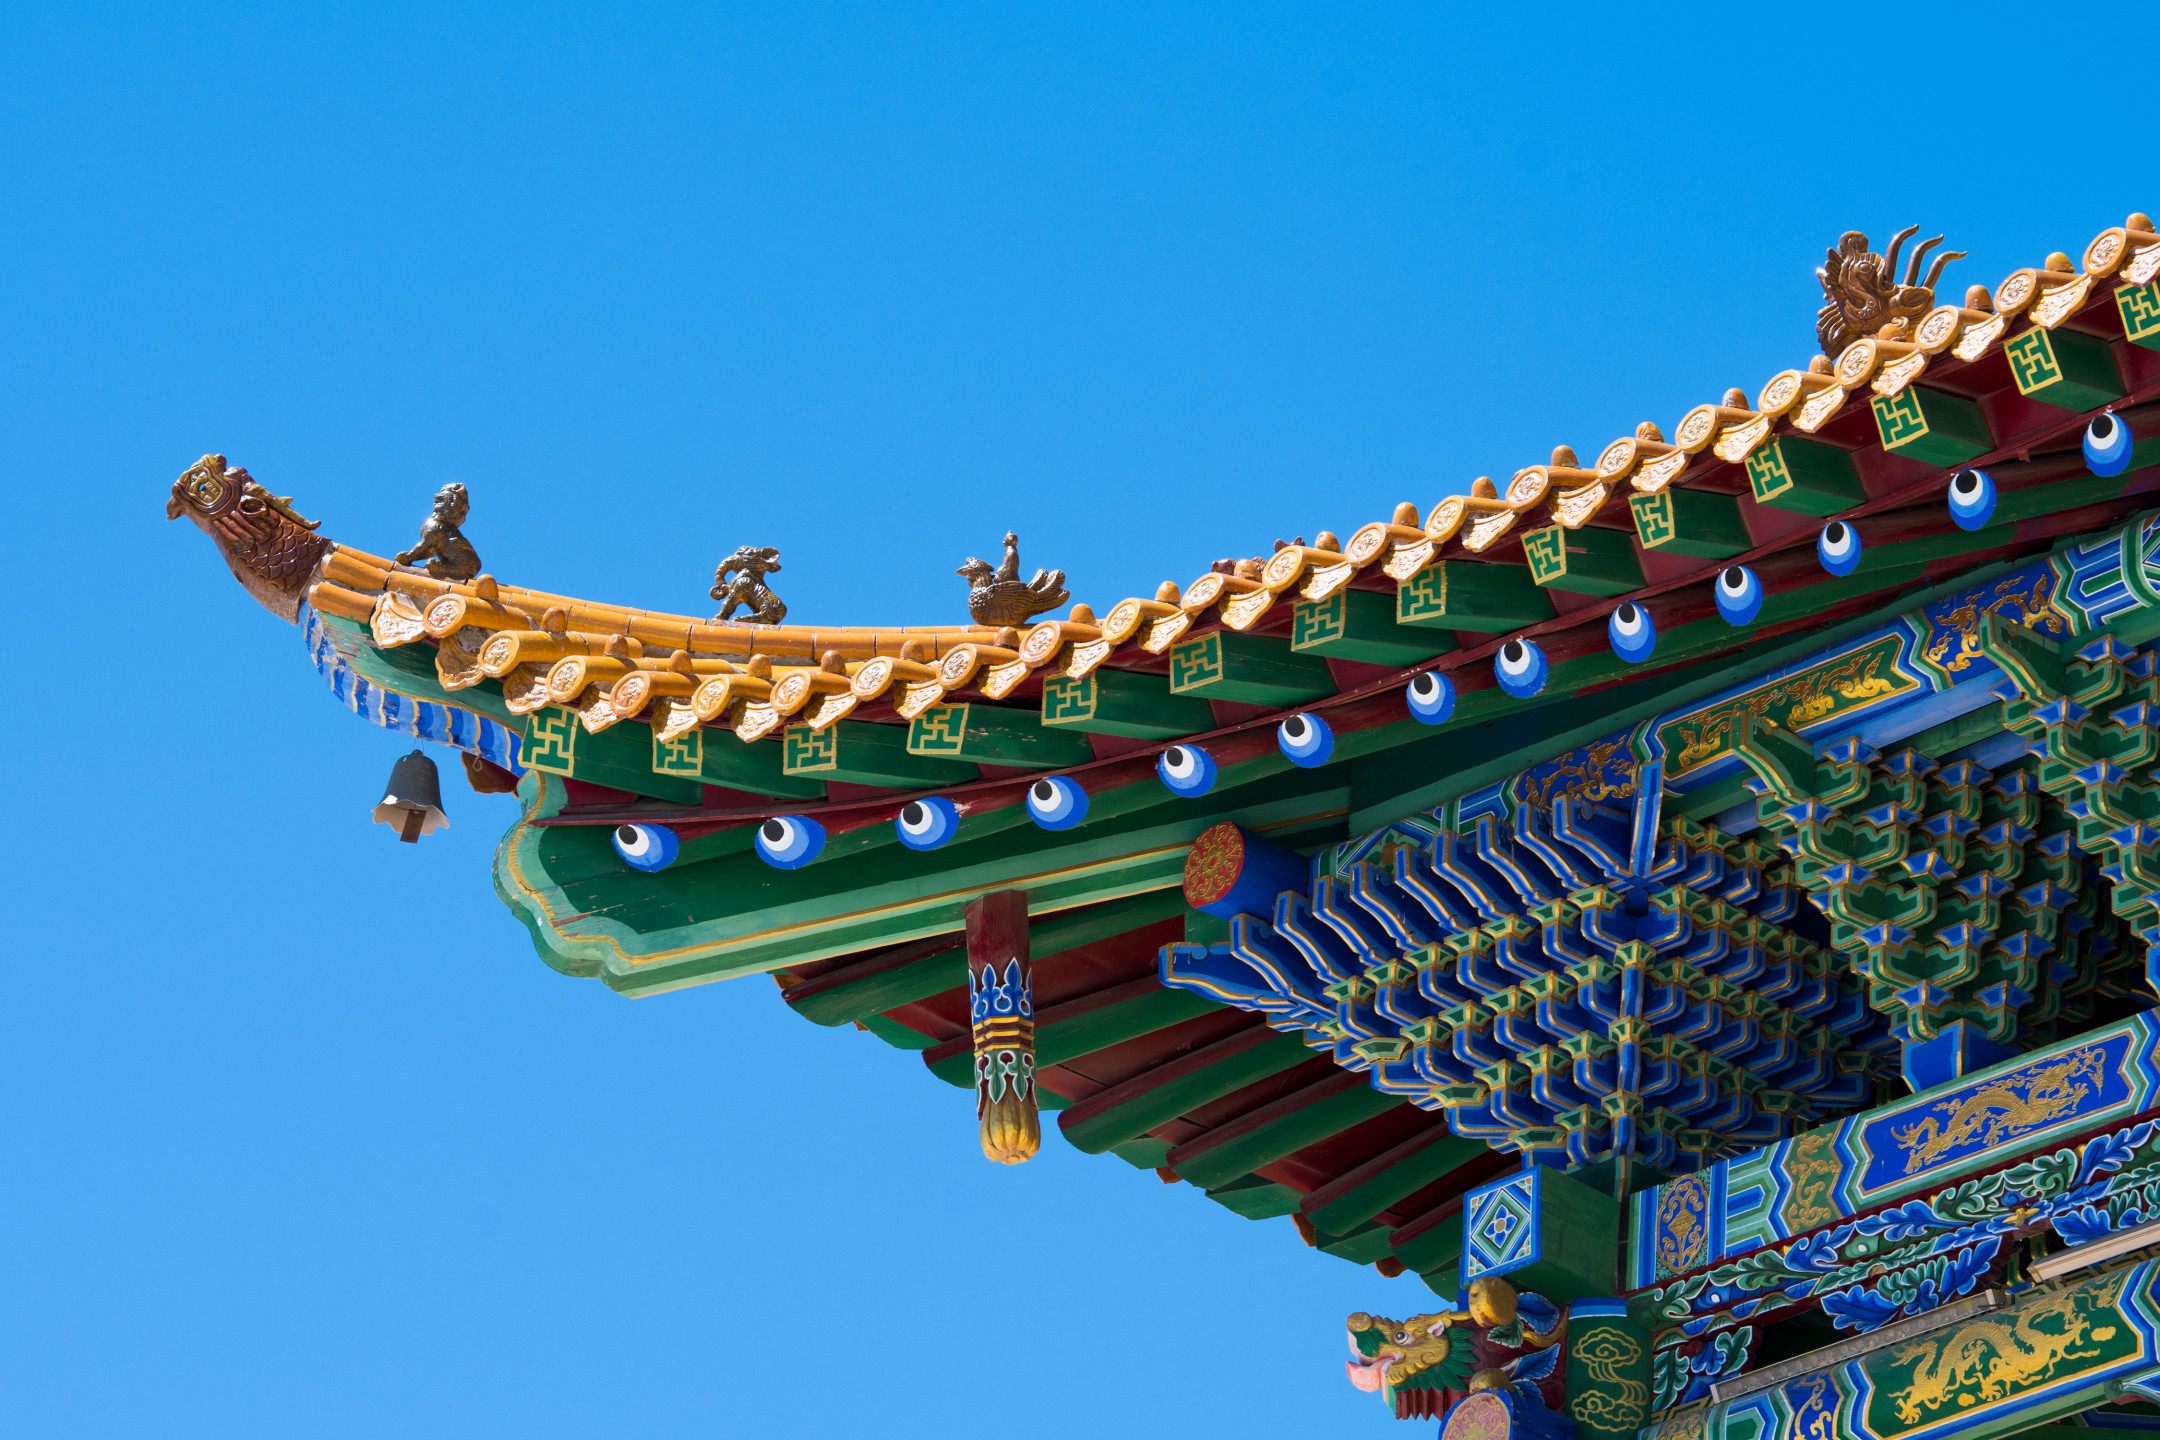 Research shows China has largest Tether trading volume